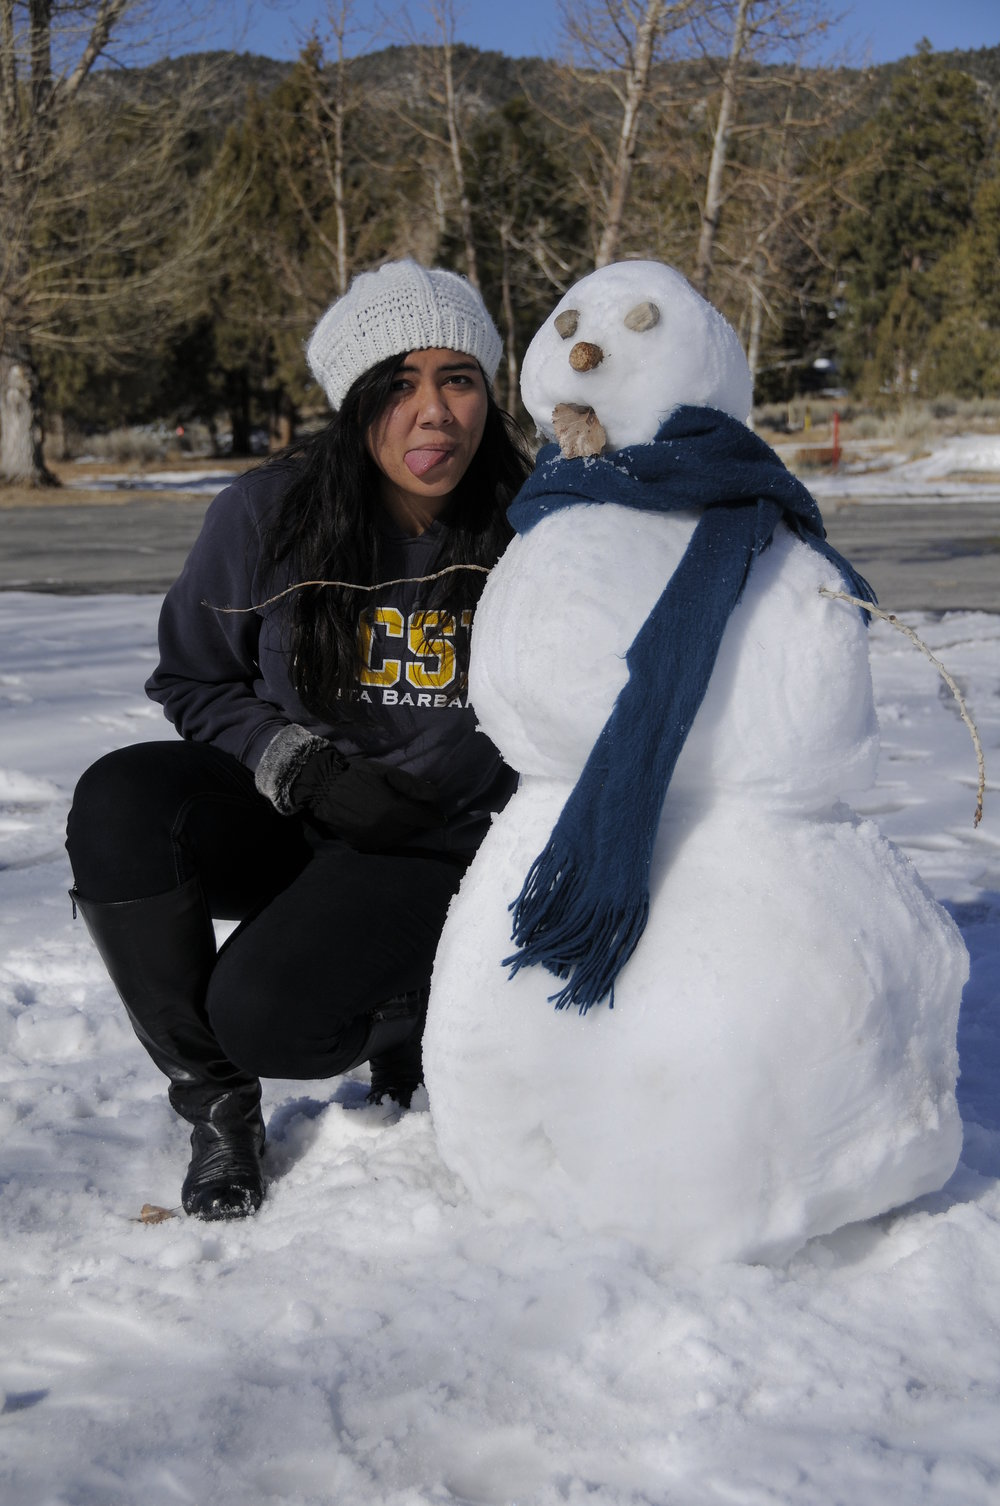 Me and my snowman during winter :P